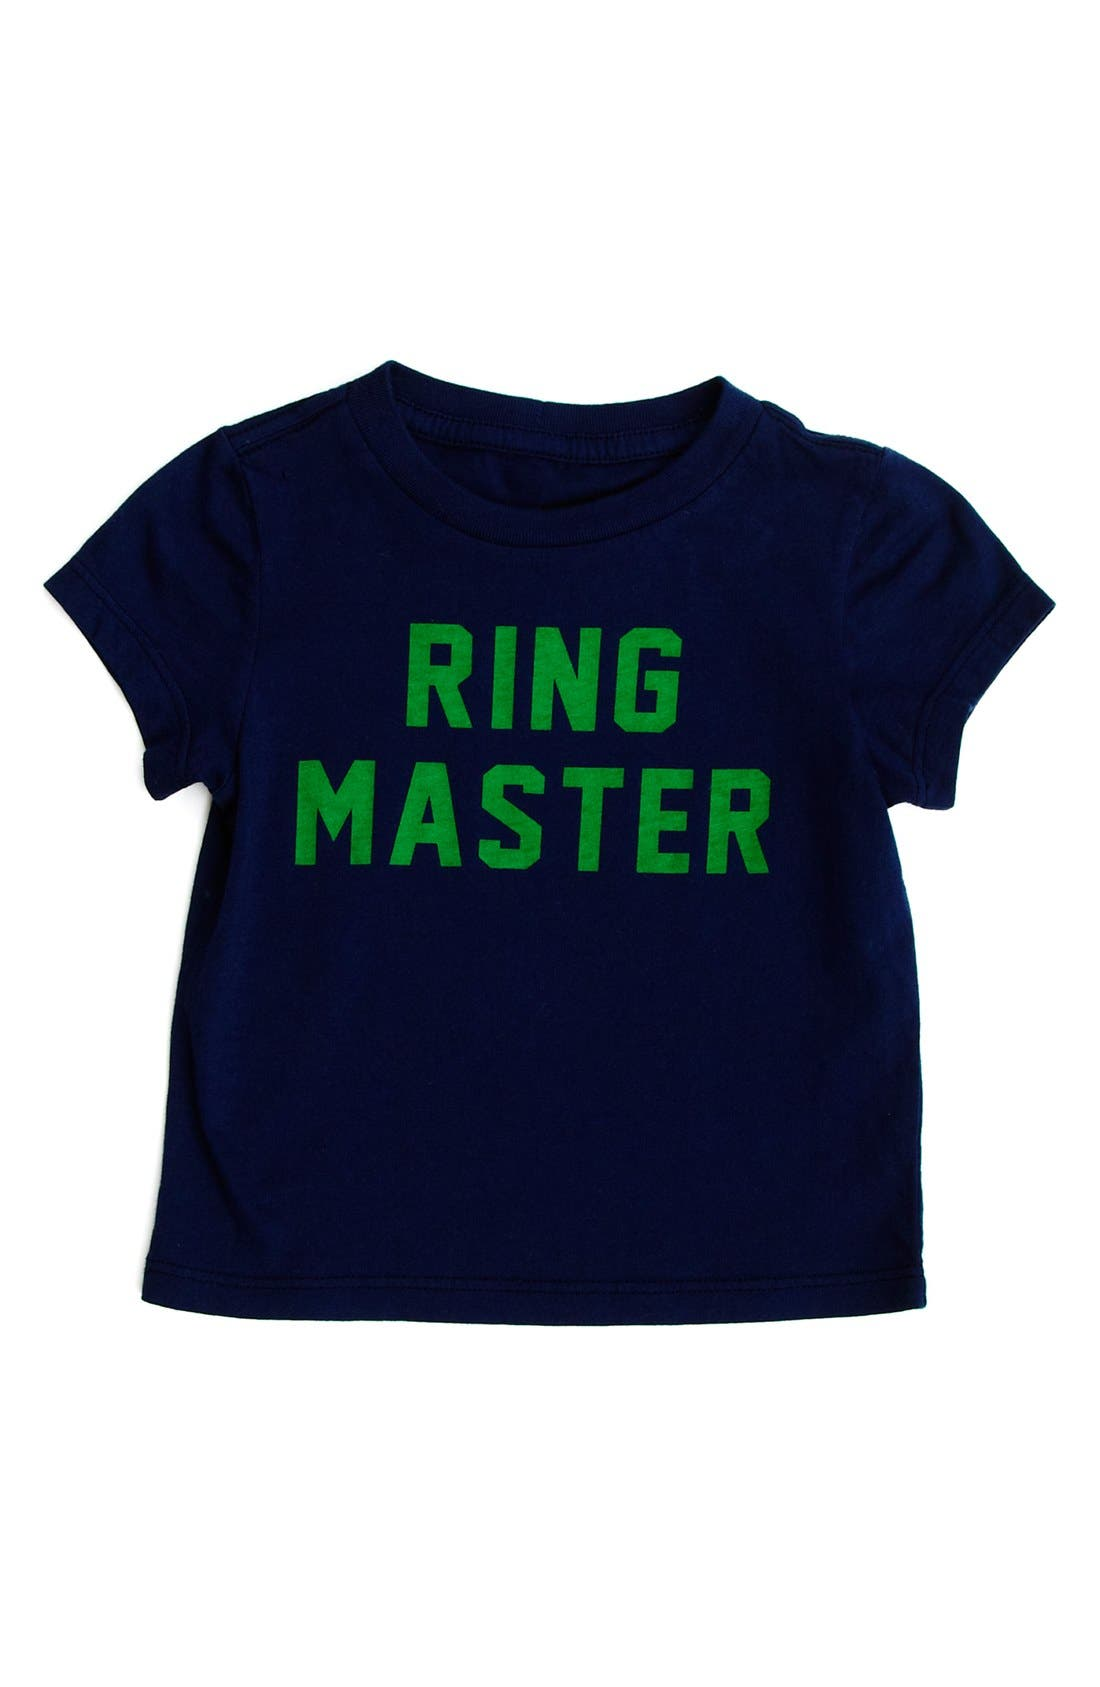 Alternate Image 1 Selected - Peek 'Ring Master' T-Shirt (Baby Girls)